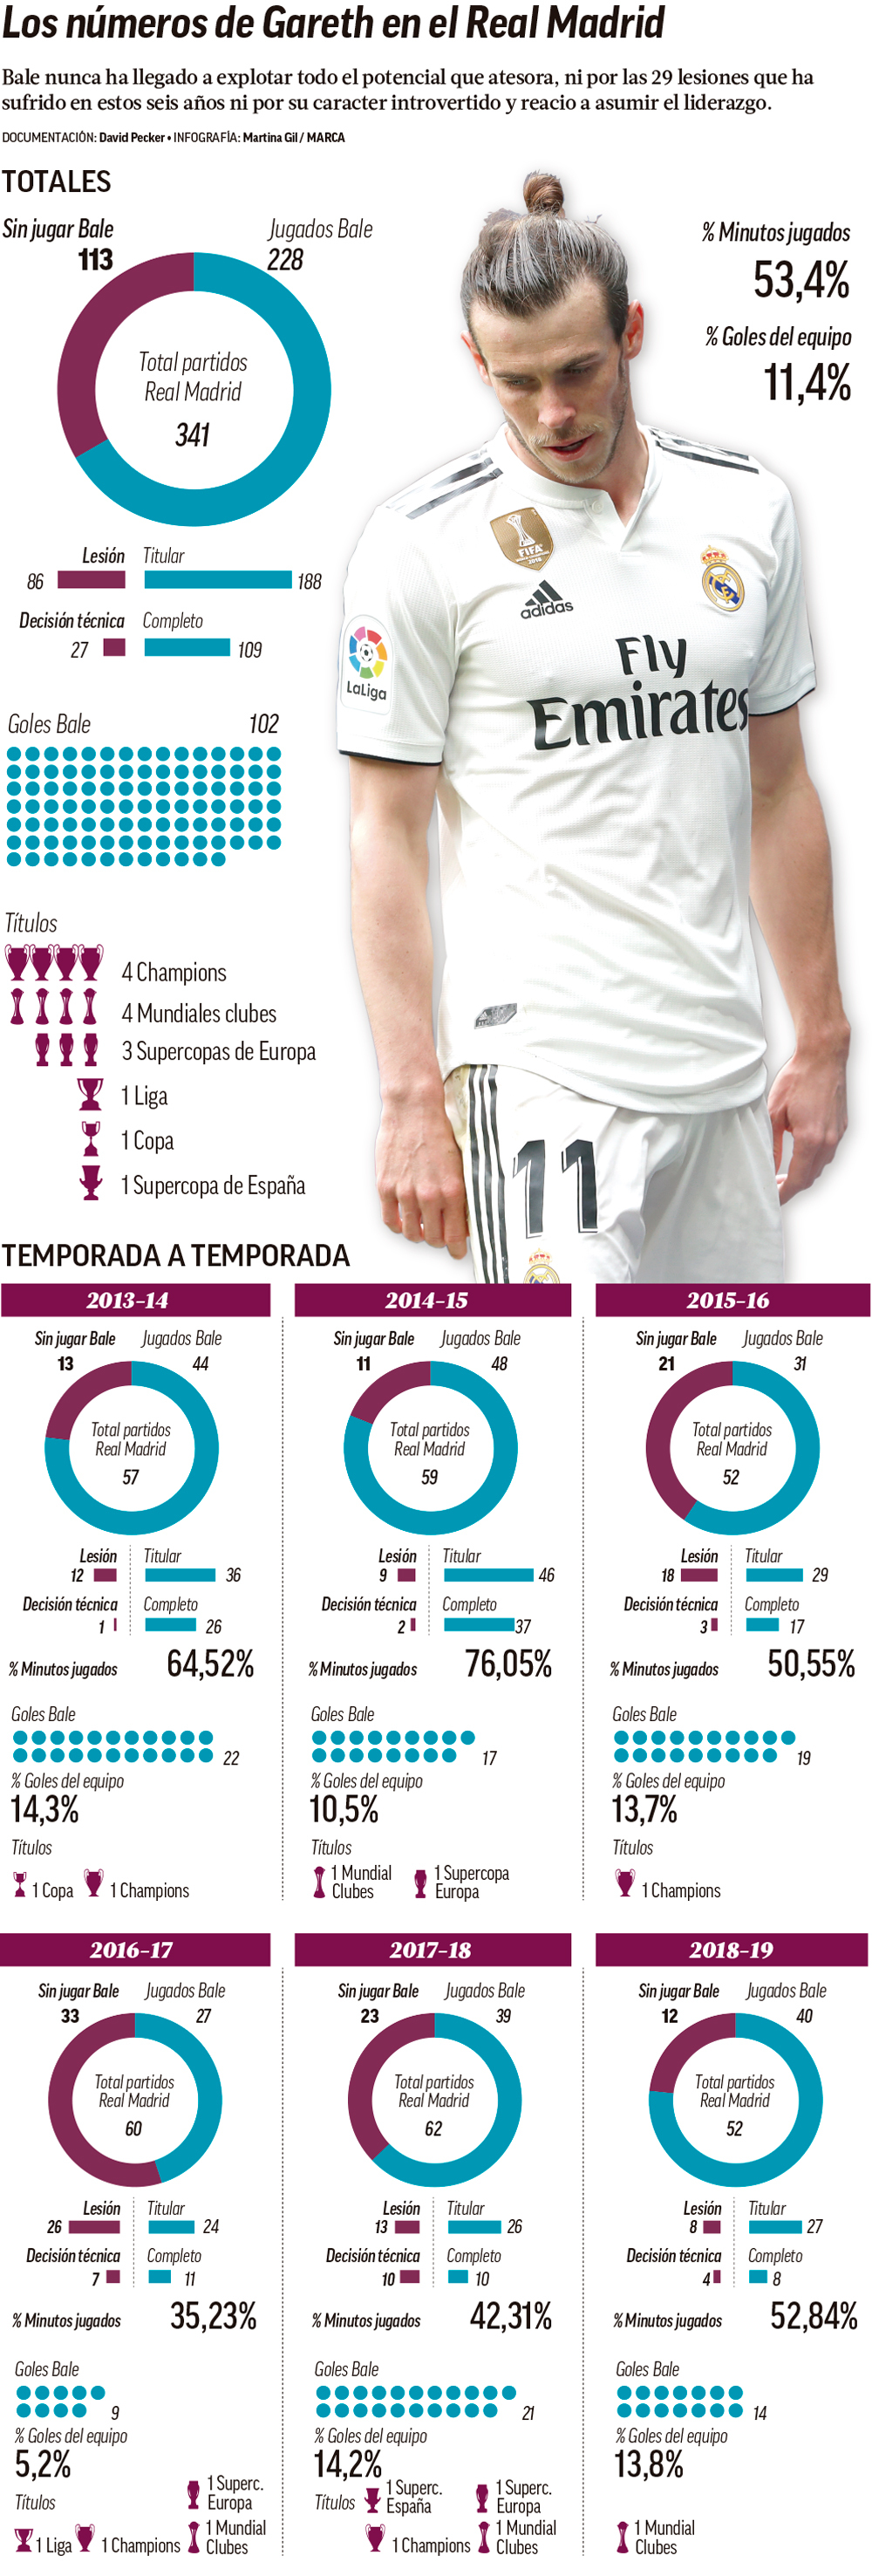 Bale's numbers at Real Madrid